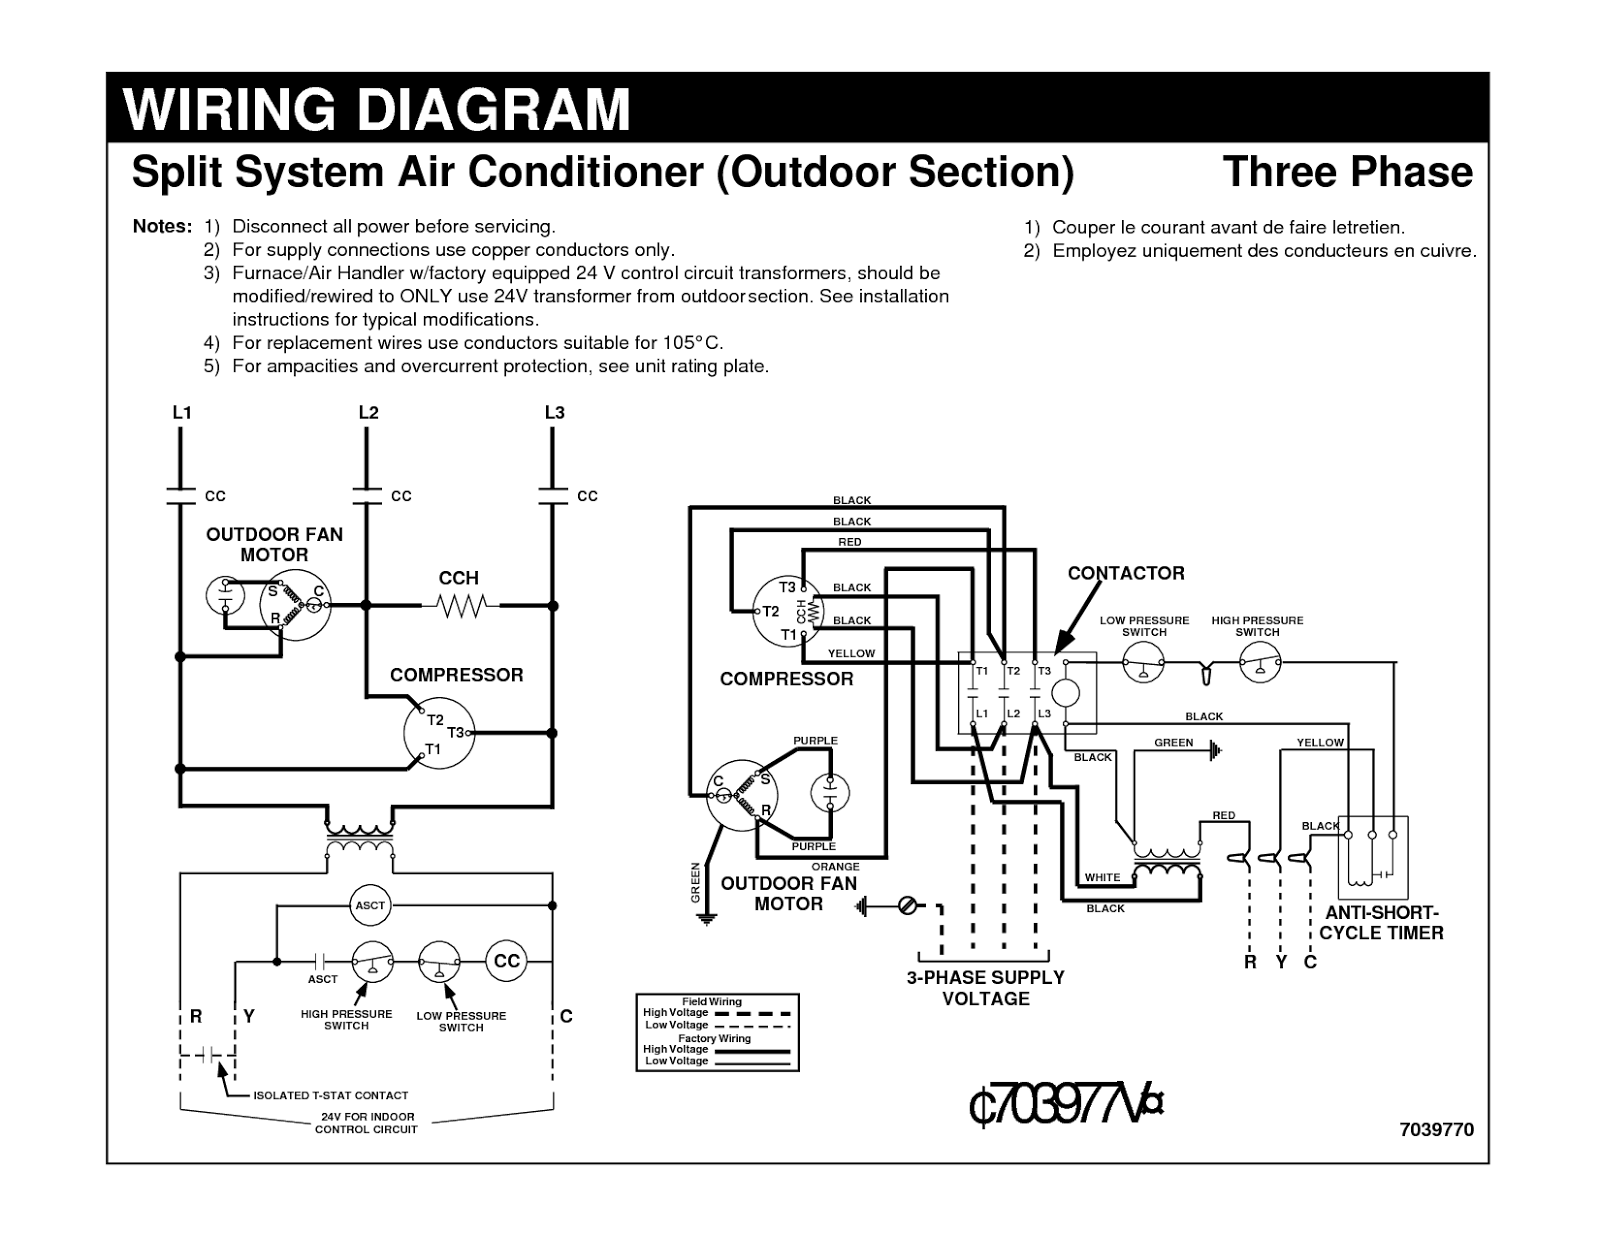 Electrical Wiring Diagrams for Air Conditioning Systems – Part One ...